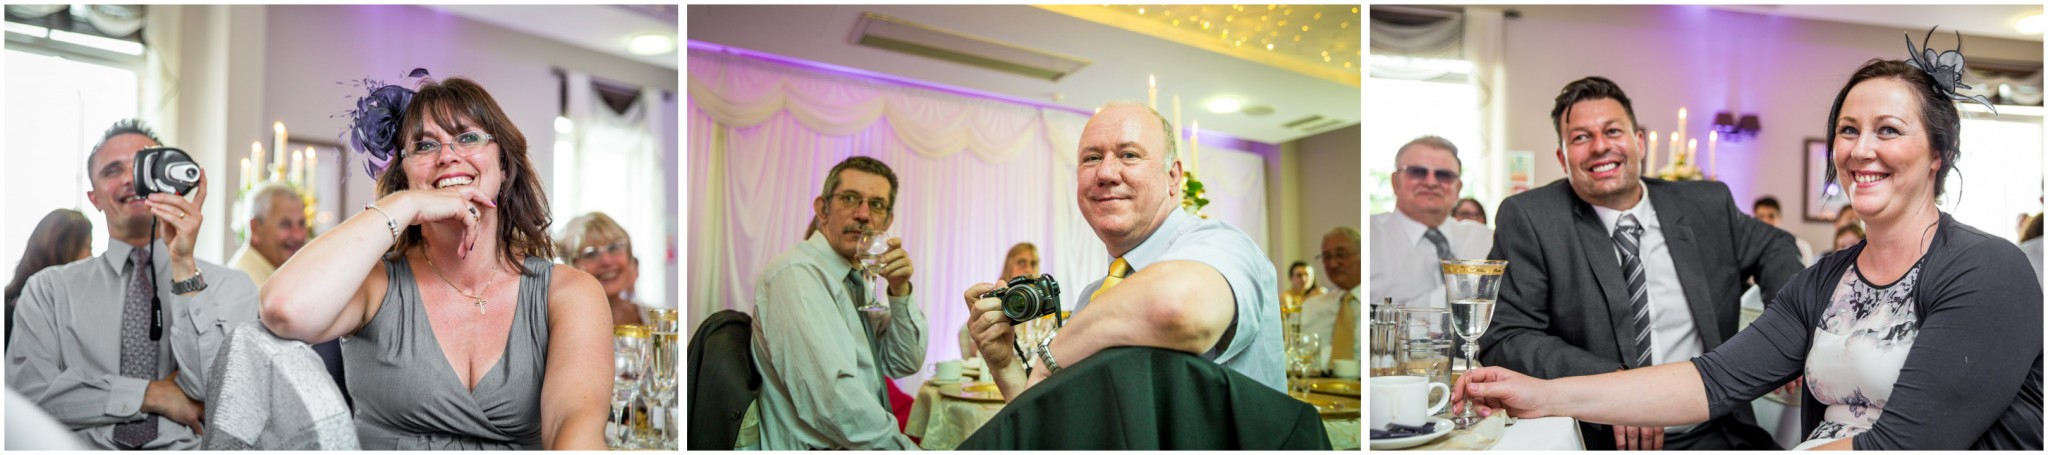 Highfield Park Wedding Photography Guest before meal